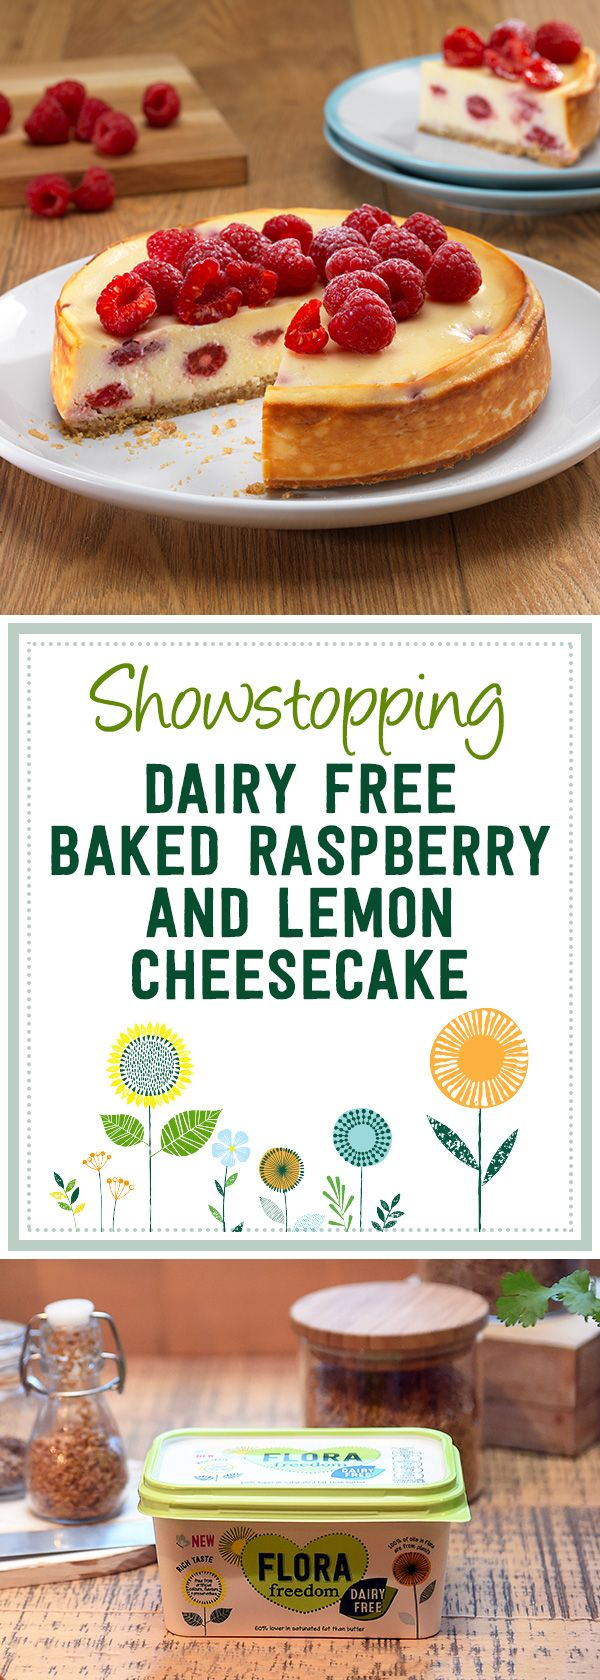 This fun little recipe for Baked Raspberry and Lemon Dairy Free Cheesecake perfectly blends citrus and sweet flavours to create a treat everyone will love – because who doesn't love cheesecake?